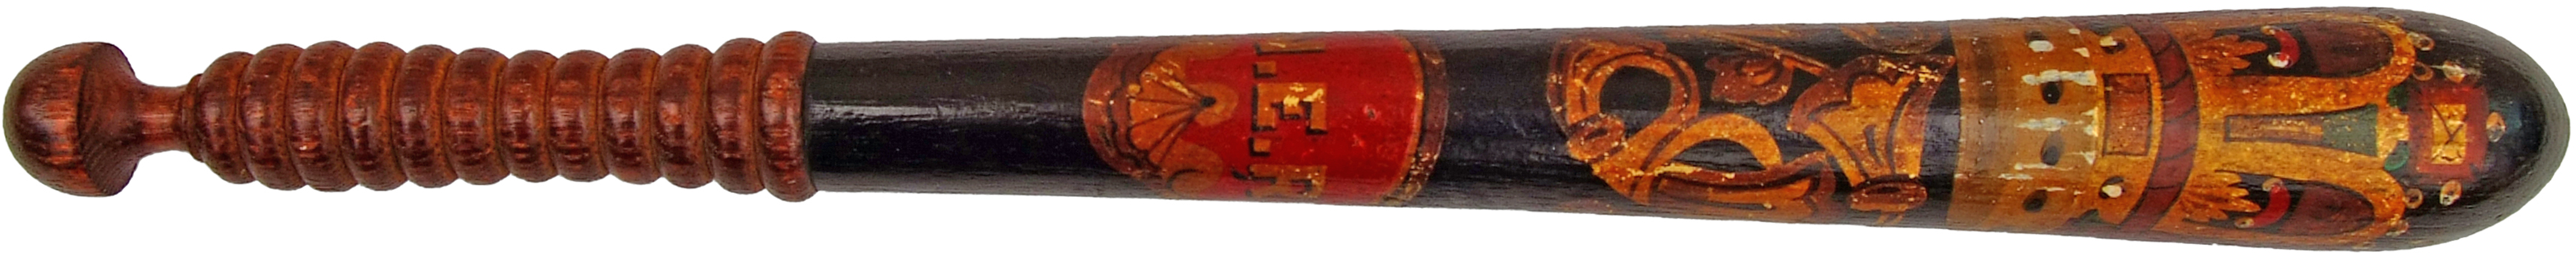 North Eastern Railway Police Truncheon. An Early